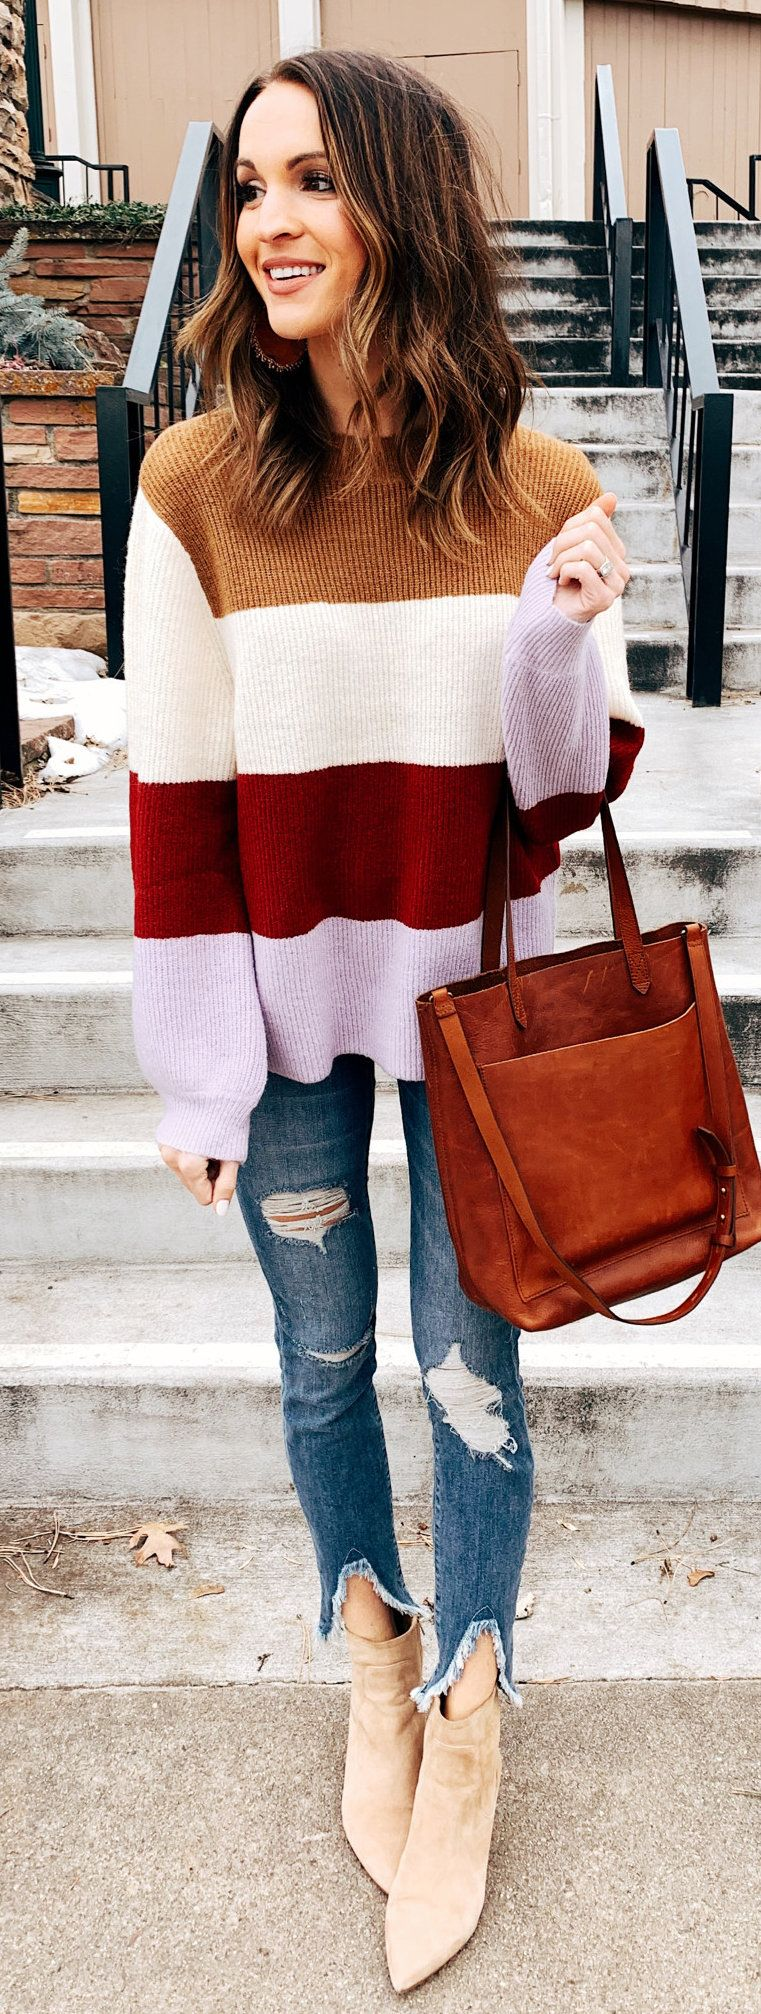 white and multicolored sweater